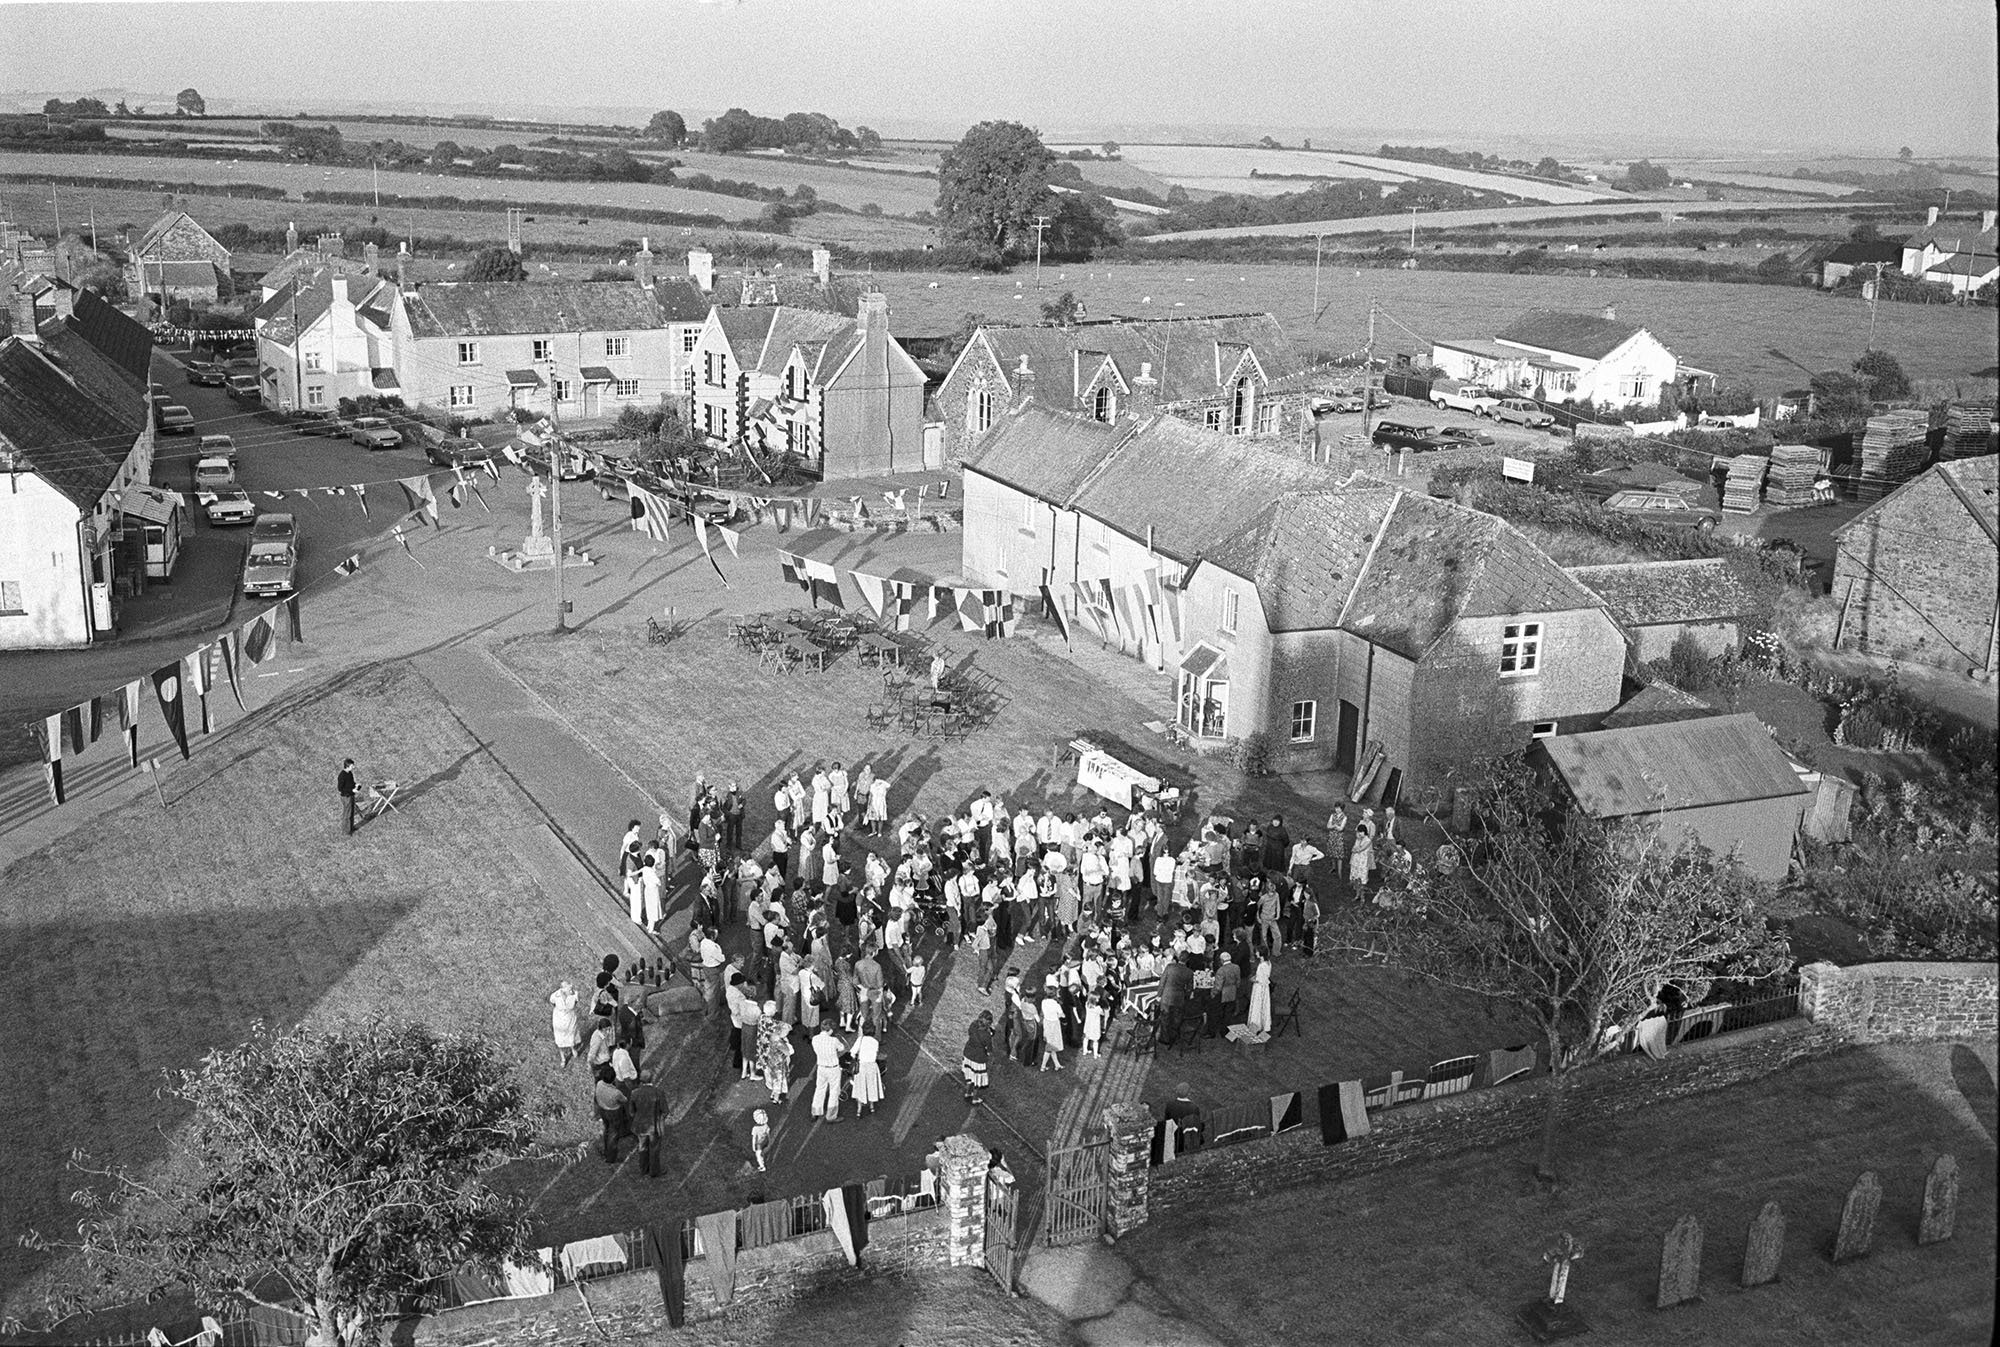 Royal Wedding. Assembling for presentation of commemorative mugs. View from church tower.<br /> [A view taken from Ashreigney Church tower of people gathered on the green for the presentation of mugs for the Royal Wedding of Prince Charles and Lady Diana Spencer. A view of the village decorated with flags and bunting is visible behind the crowd.]